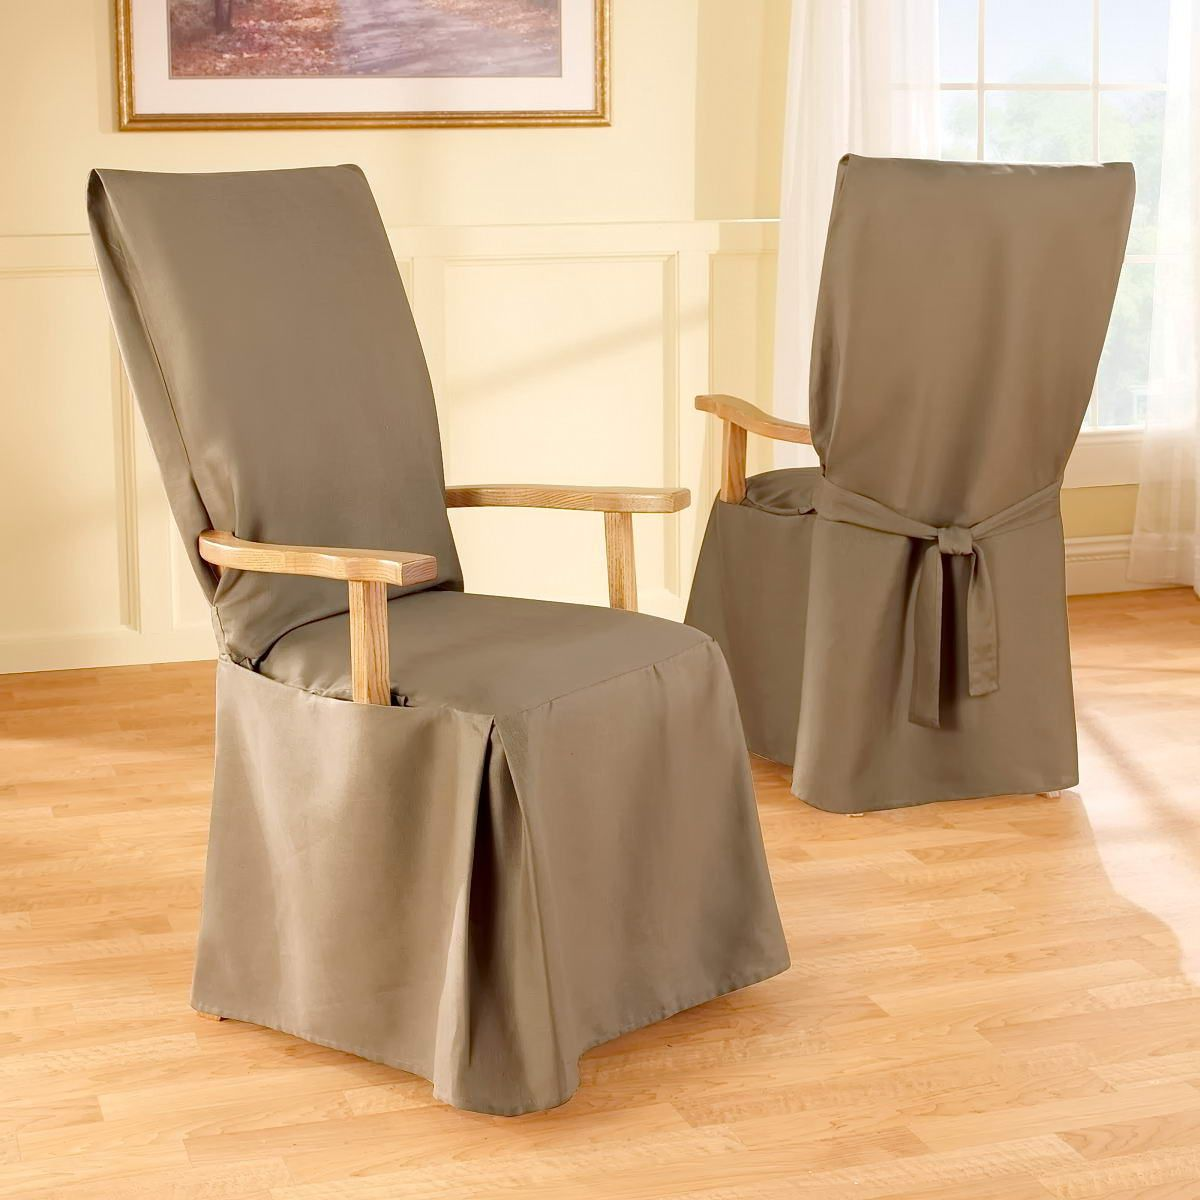 Slipcovers For Dining Room Chairs With Arms Slipcovers For Chairs Dining Room Chairs Dining Room Chair Covers